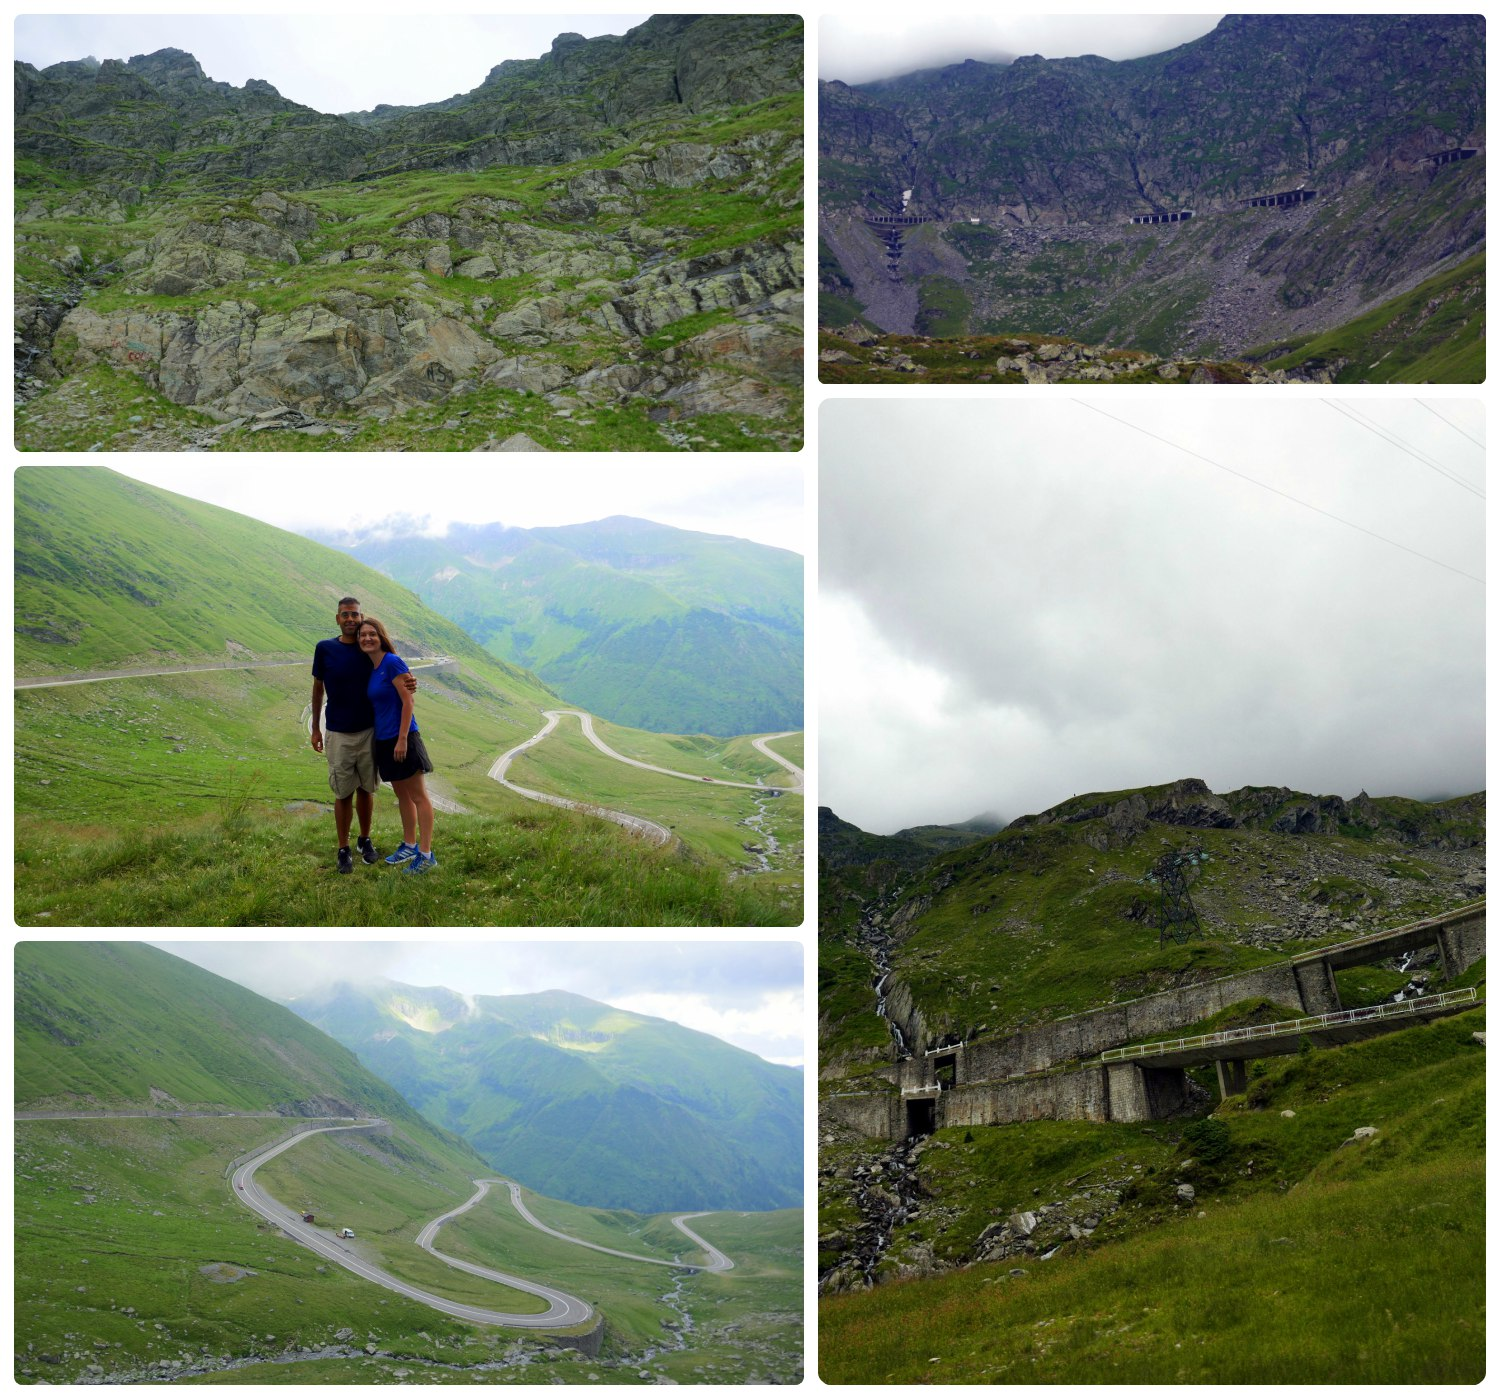 As we climbed up the mountain on the Transfagarasan Highway, the fog rolled in and the 80 degree Fahrenheit weather quickly dropped enough that we needed to turn on the heater in our rental car. On this side of the mountains the highway has sharp switchbacks, but nothing like the other side... just wait!